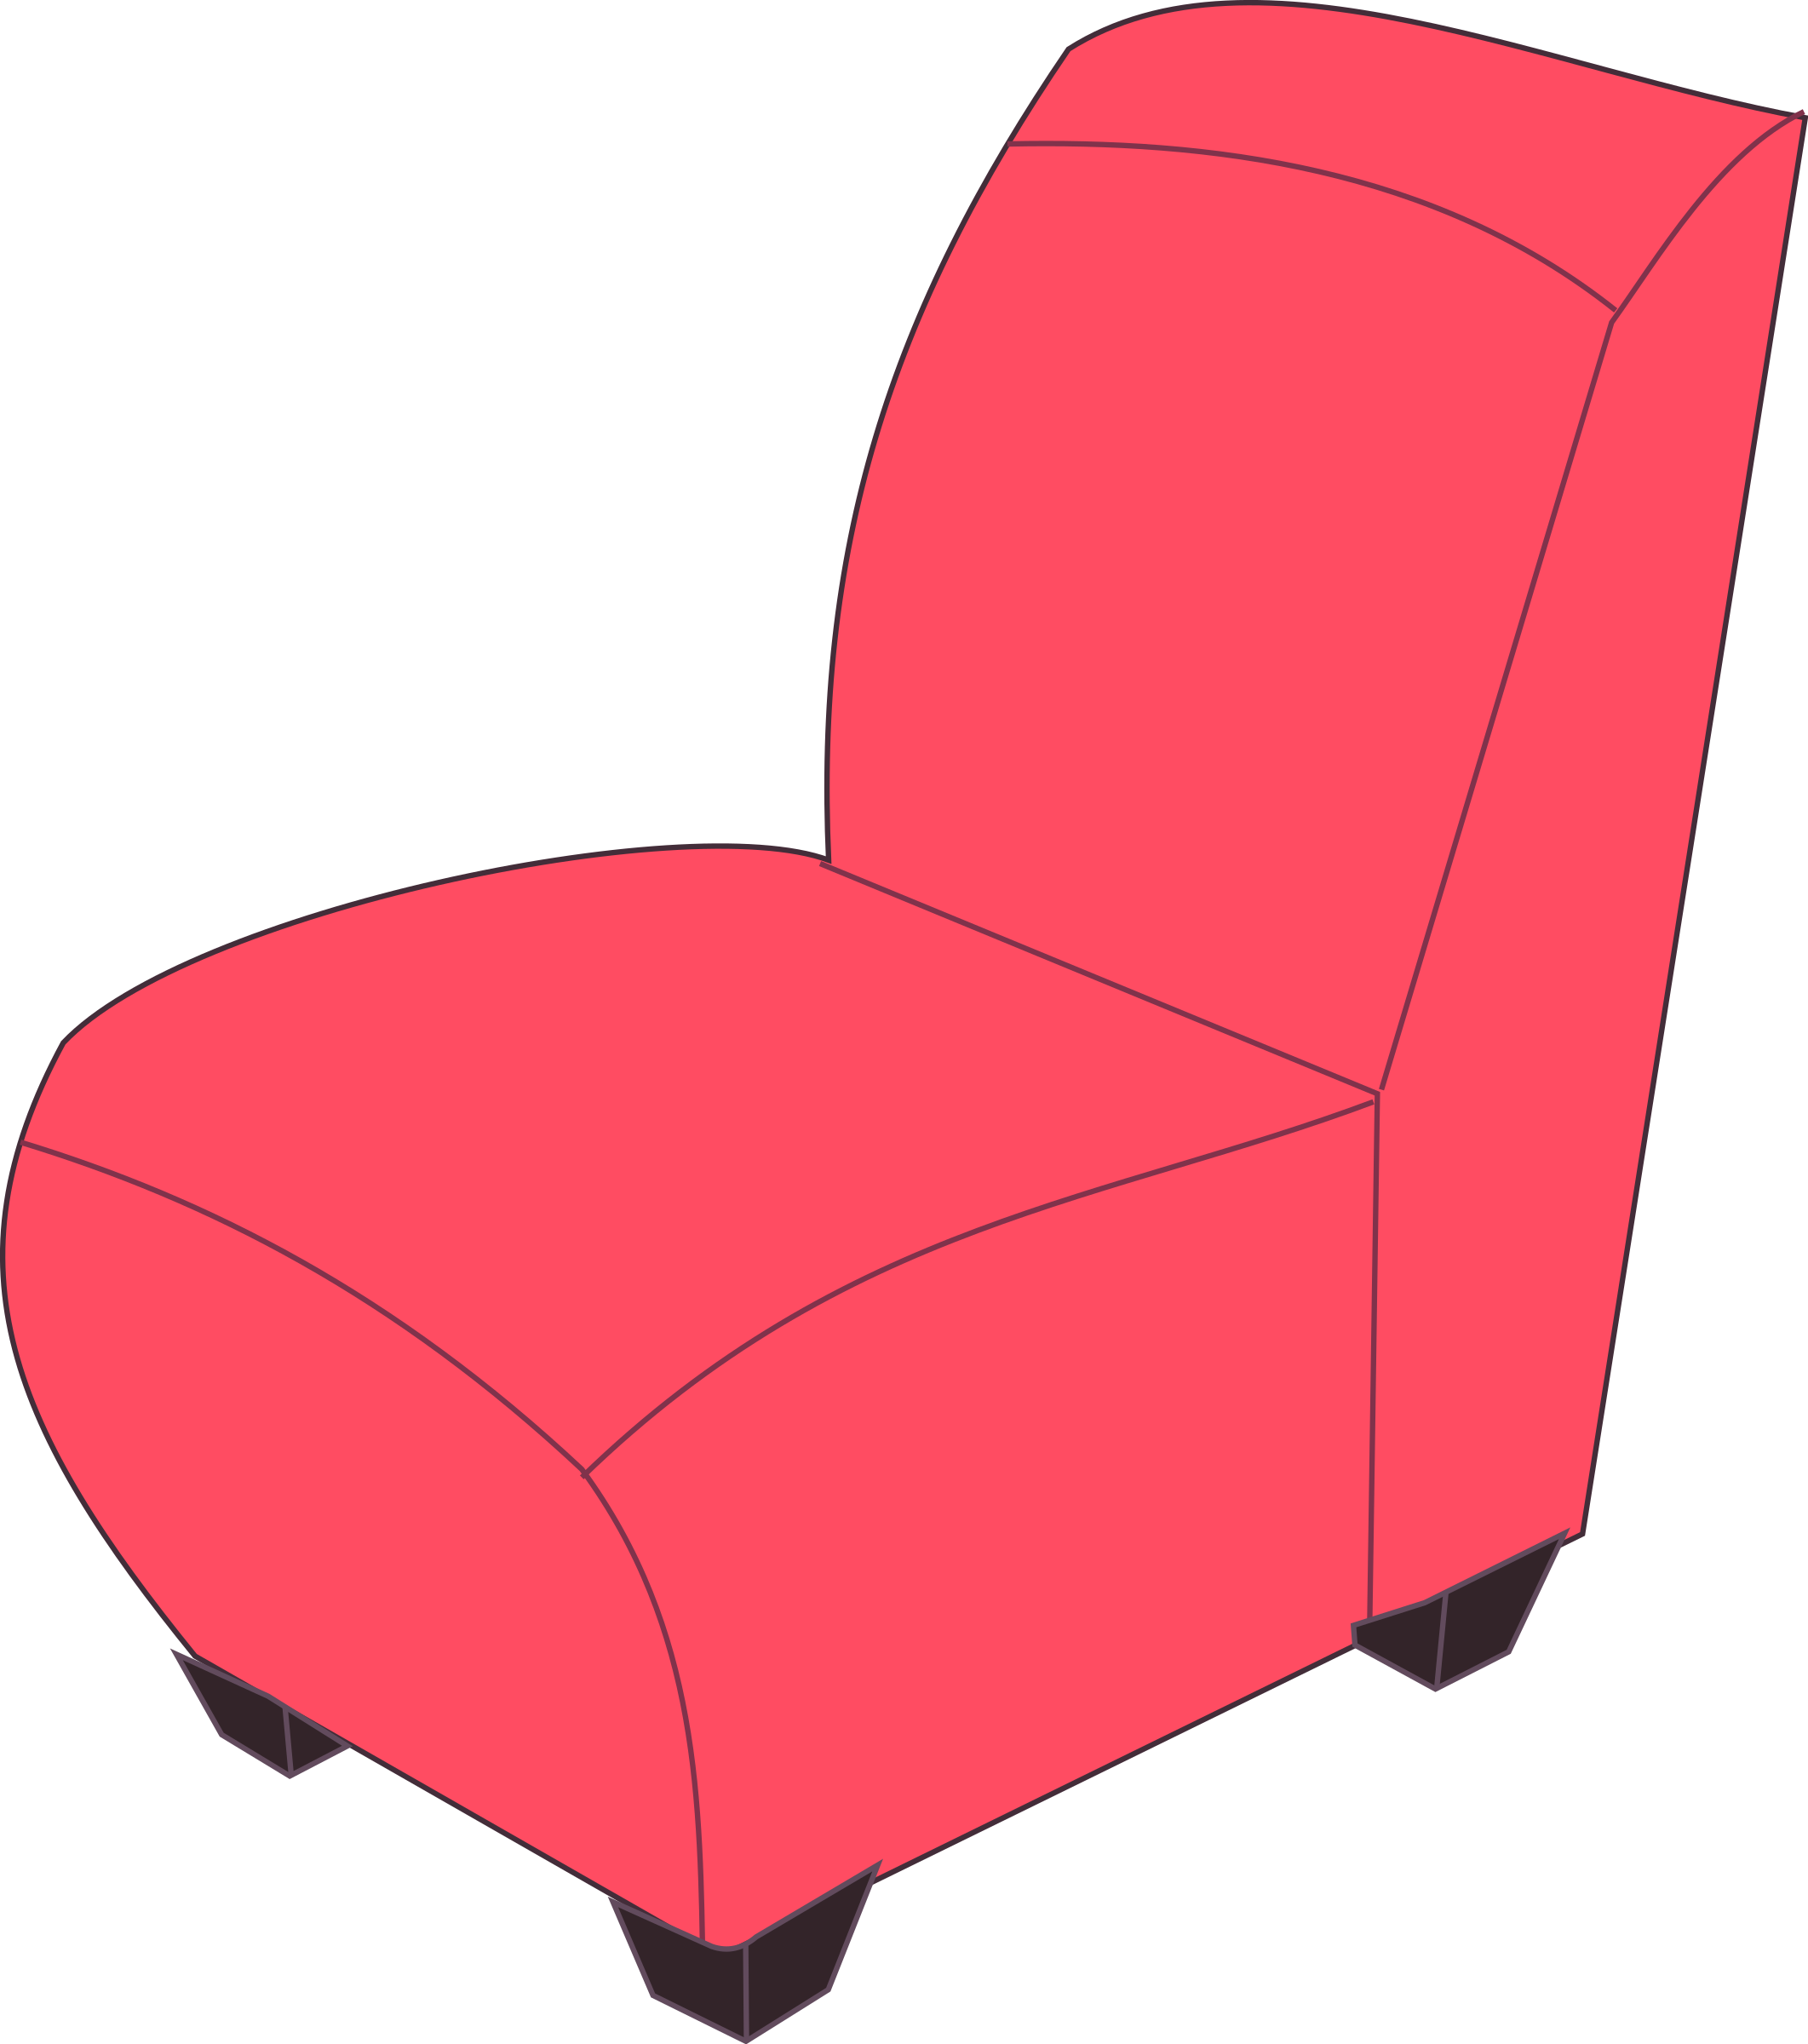 Red armless chair by Rfc1394